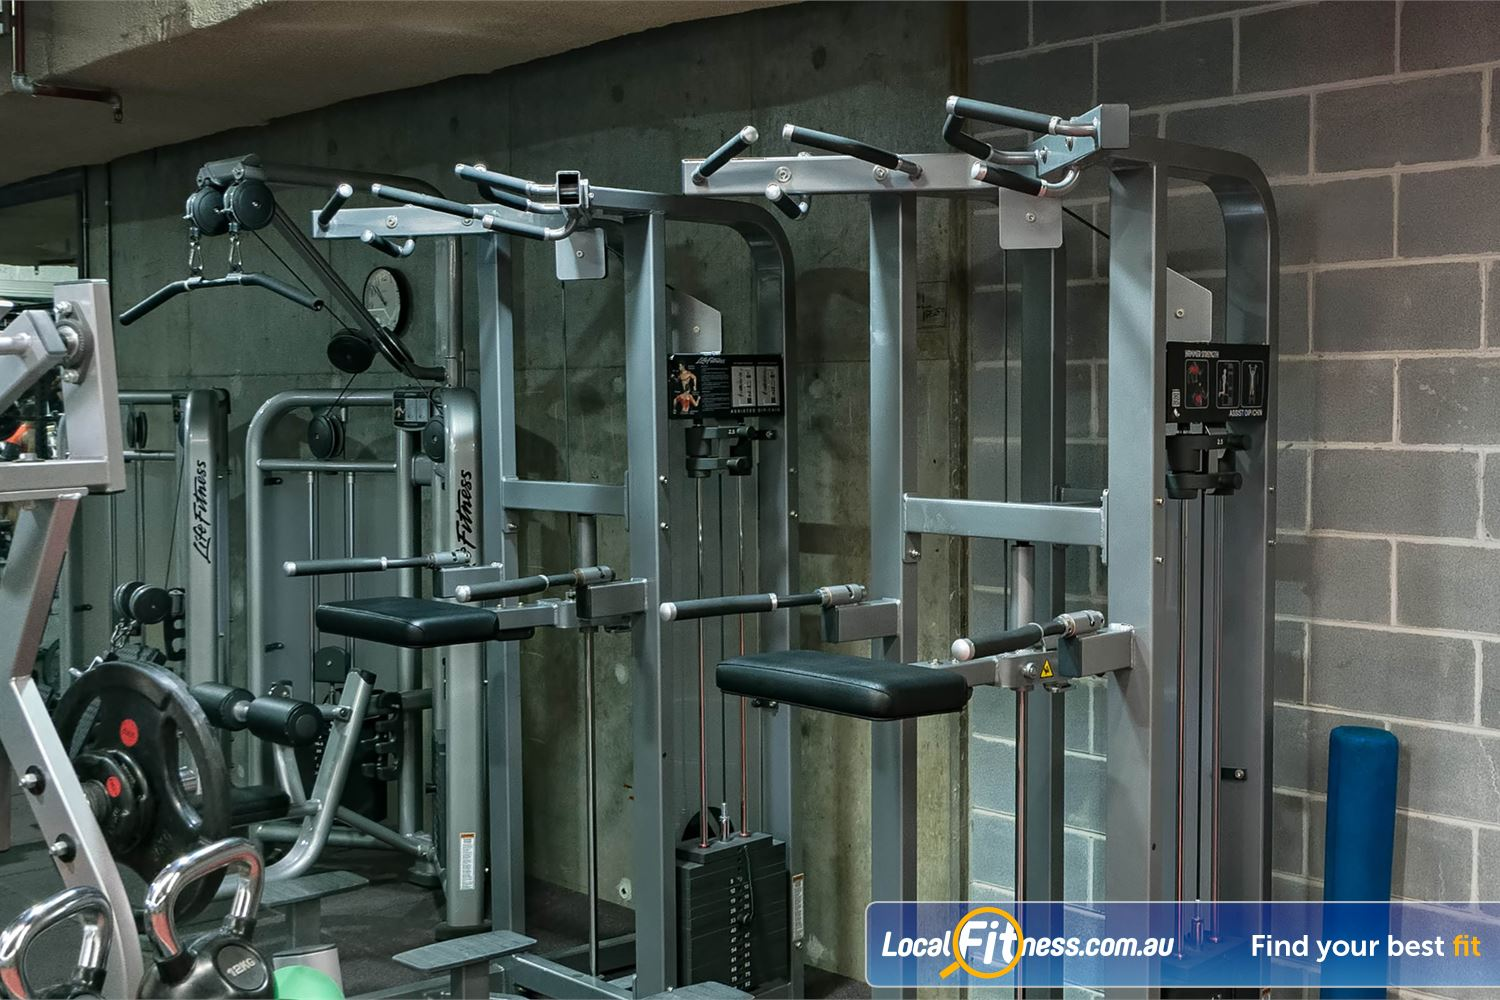 Fitness First Platinum Shelley St Near Alexandria Mc Multiples of the same strength machines so you don't have to wait.